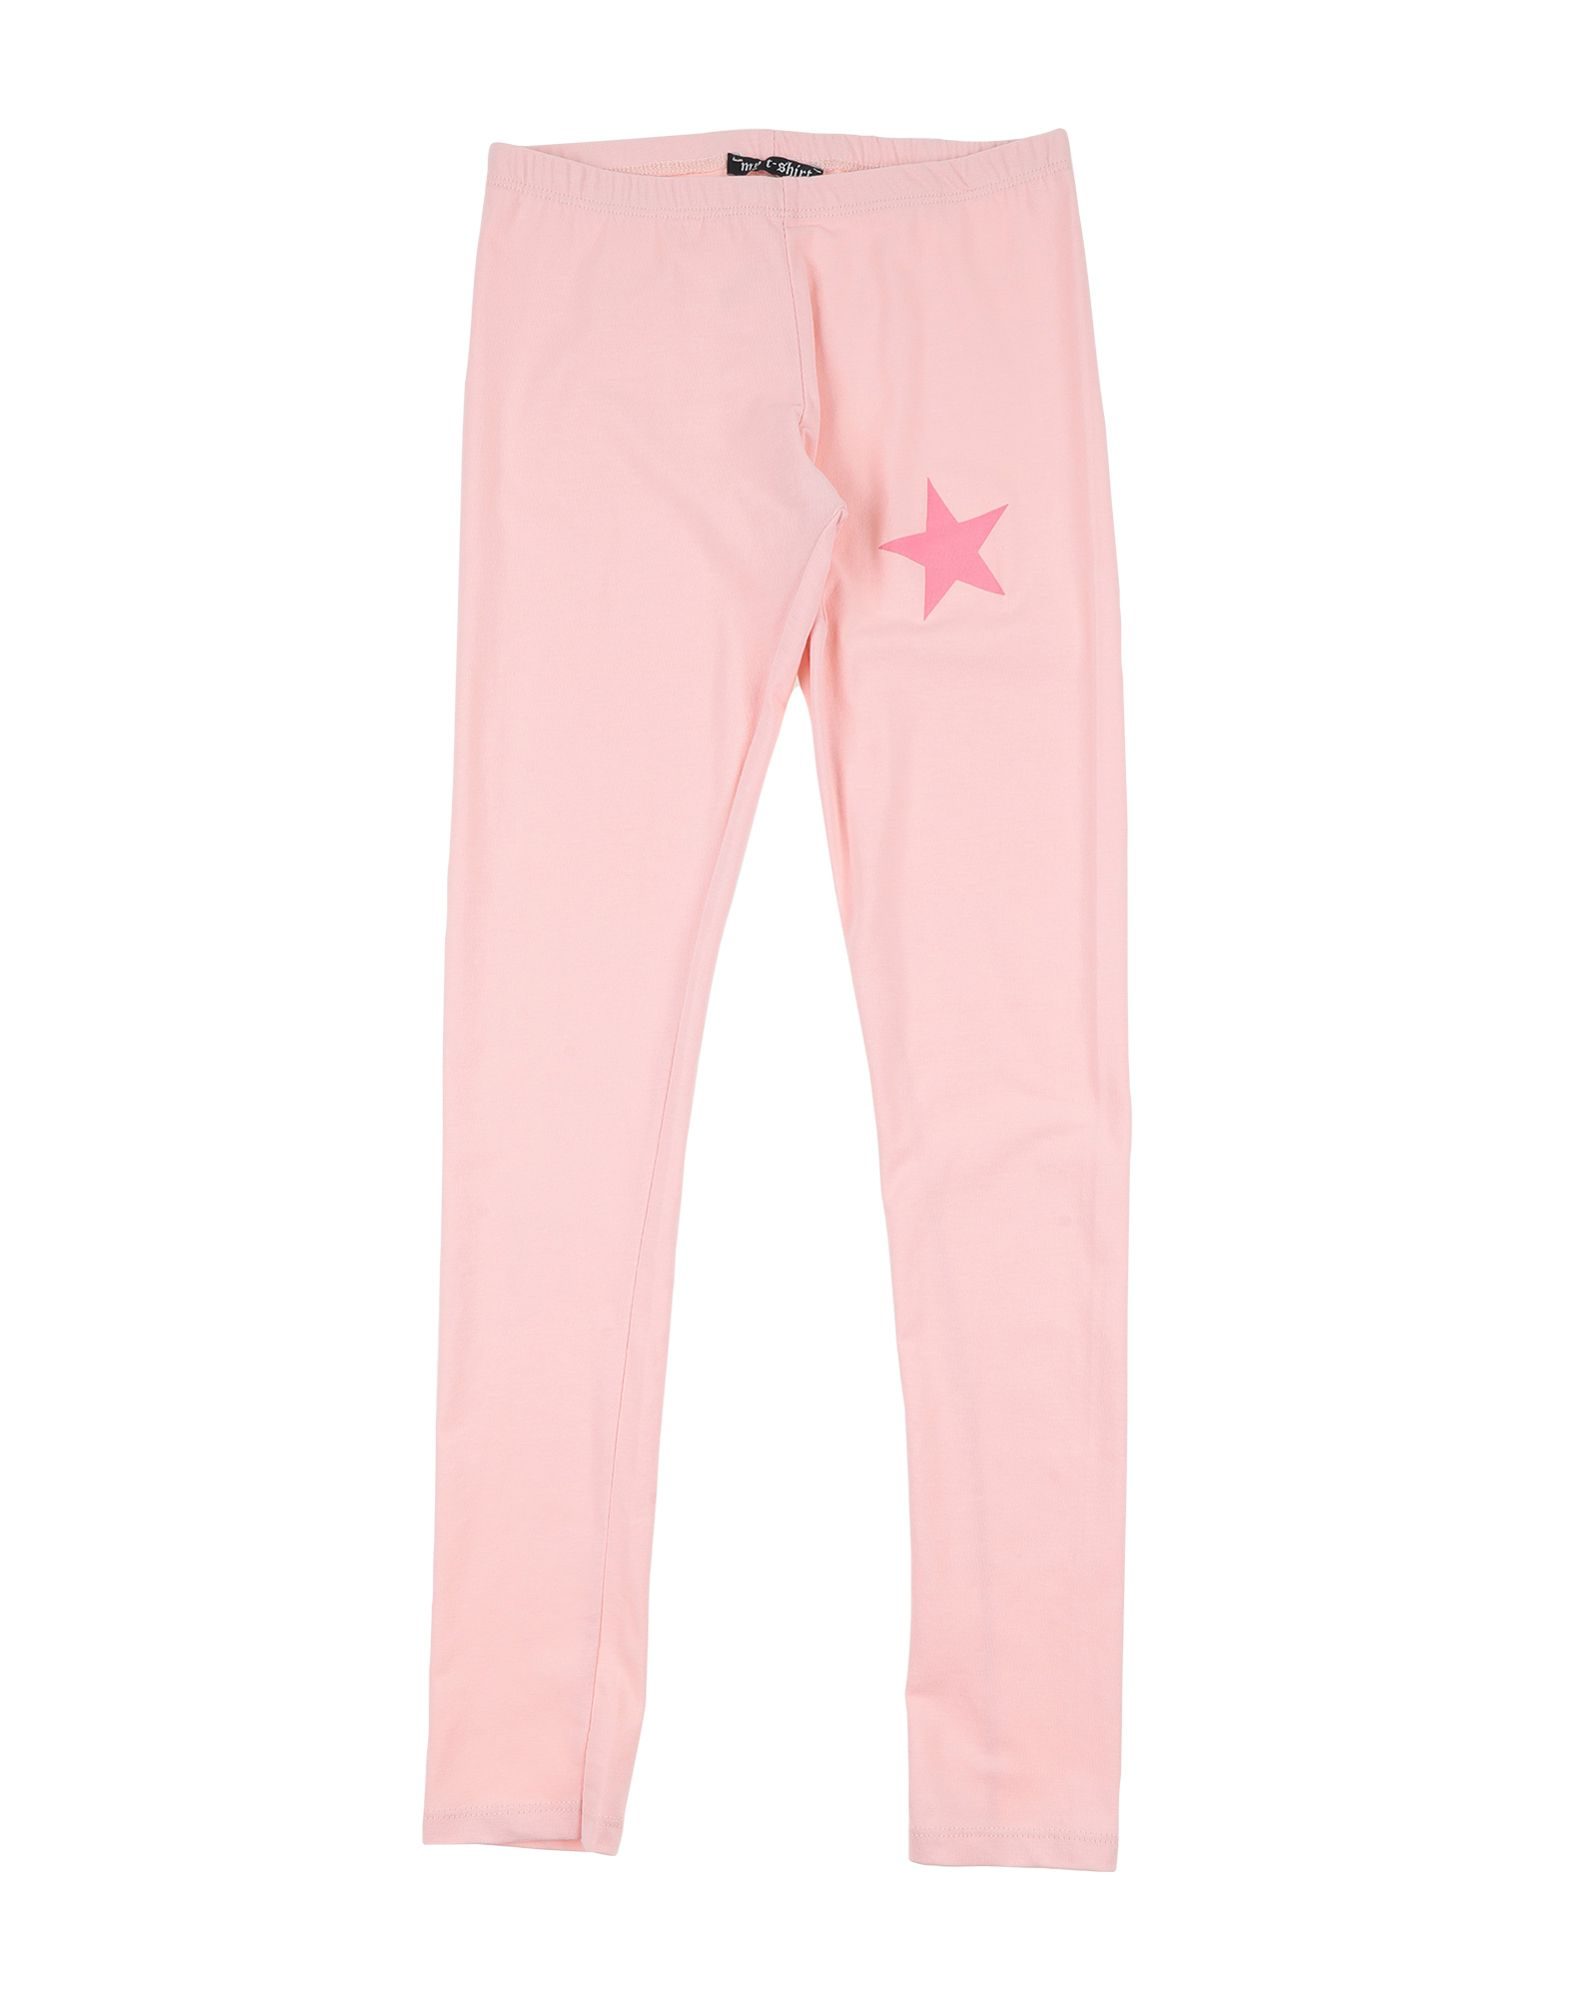 My T-shirt Kids' Leggings In Pink